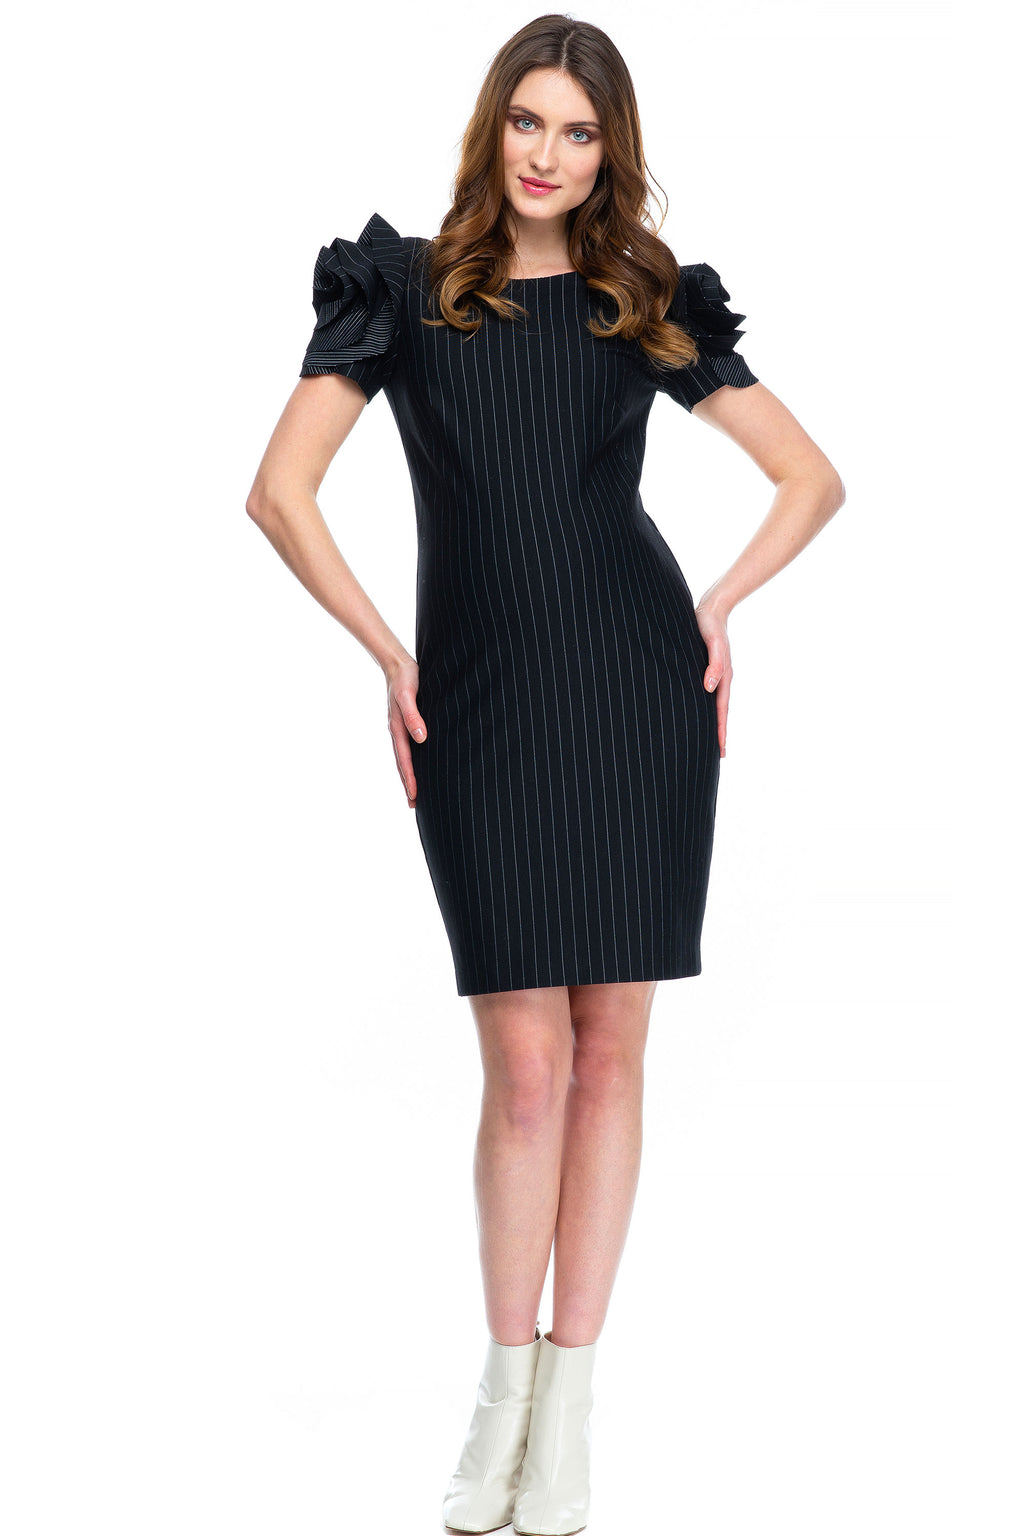 Milano Flower Sleeve Maternity Dress in Pinstripe by P. Brunelli - Seven Women Maternity